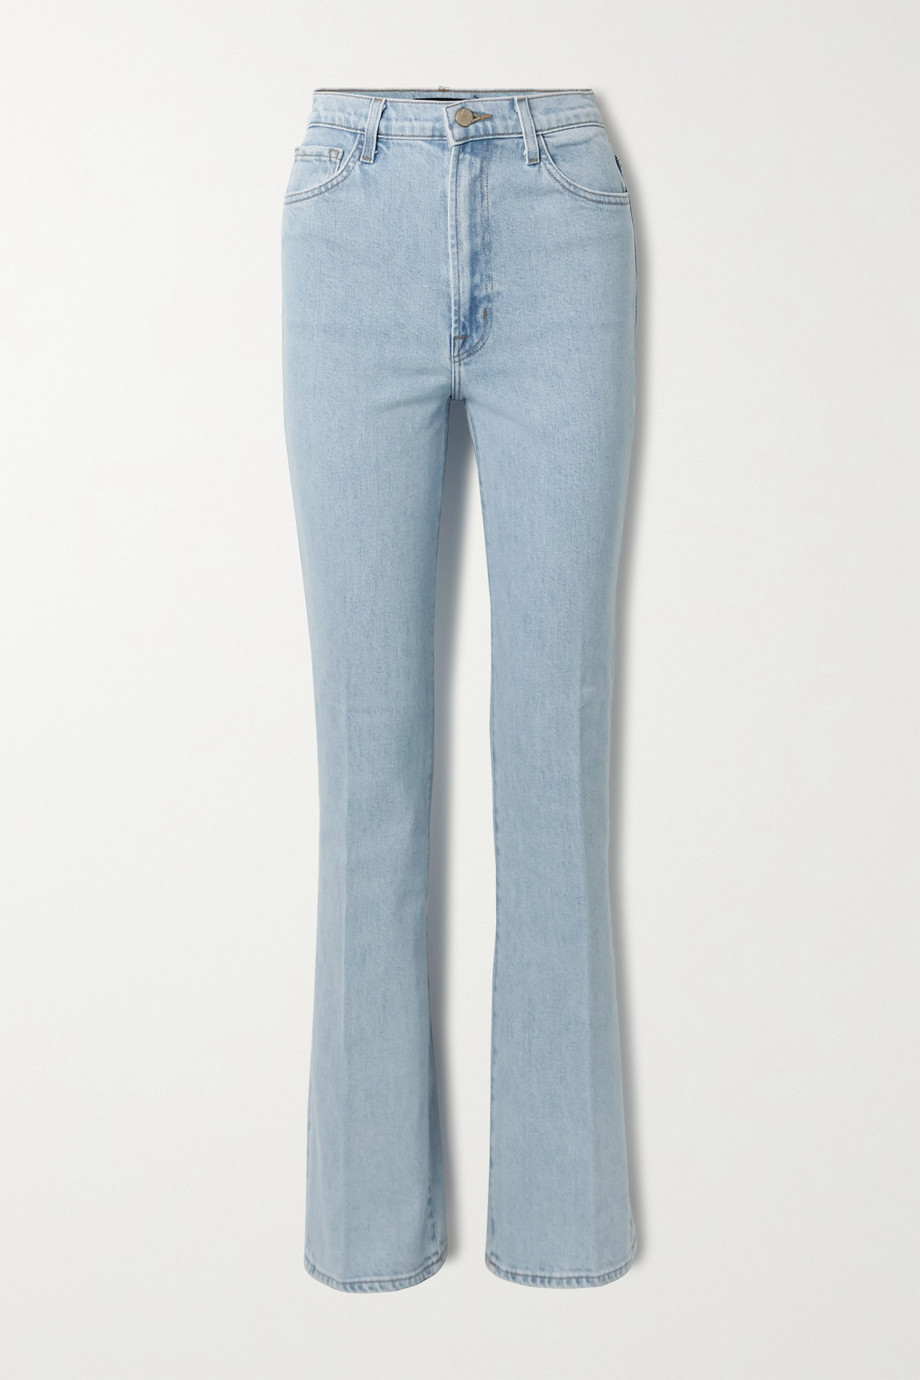 J Brand 1219 Runway high-rise flared jeans